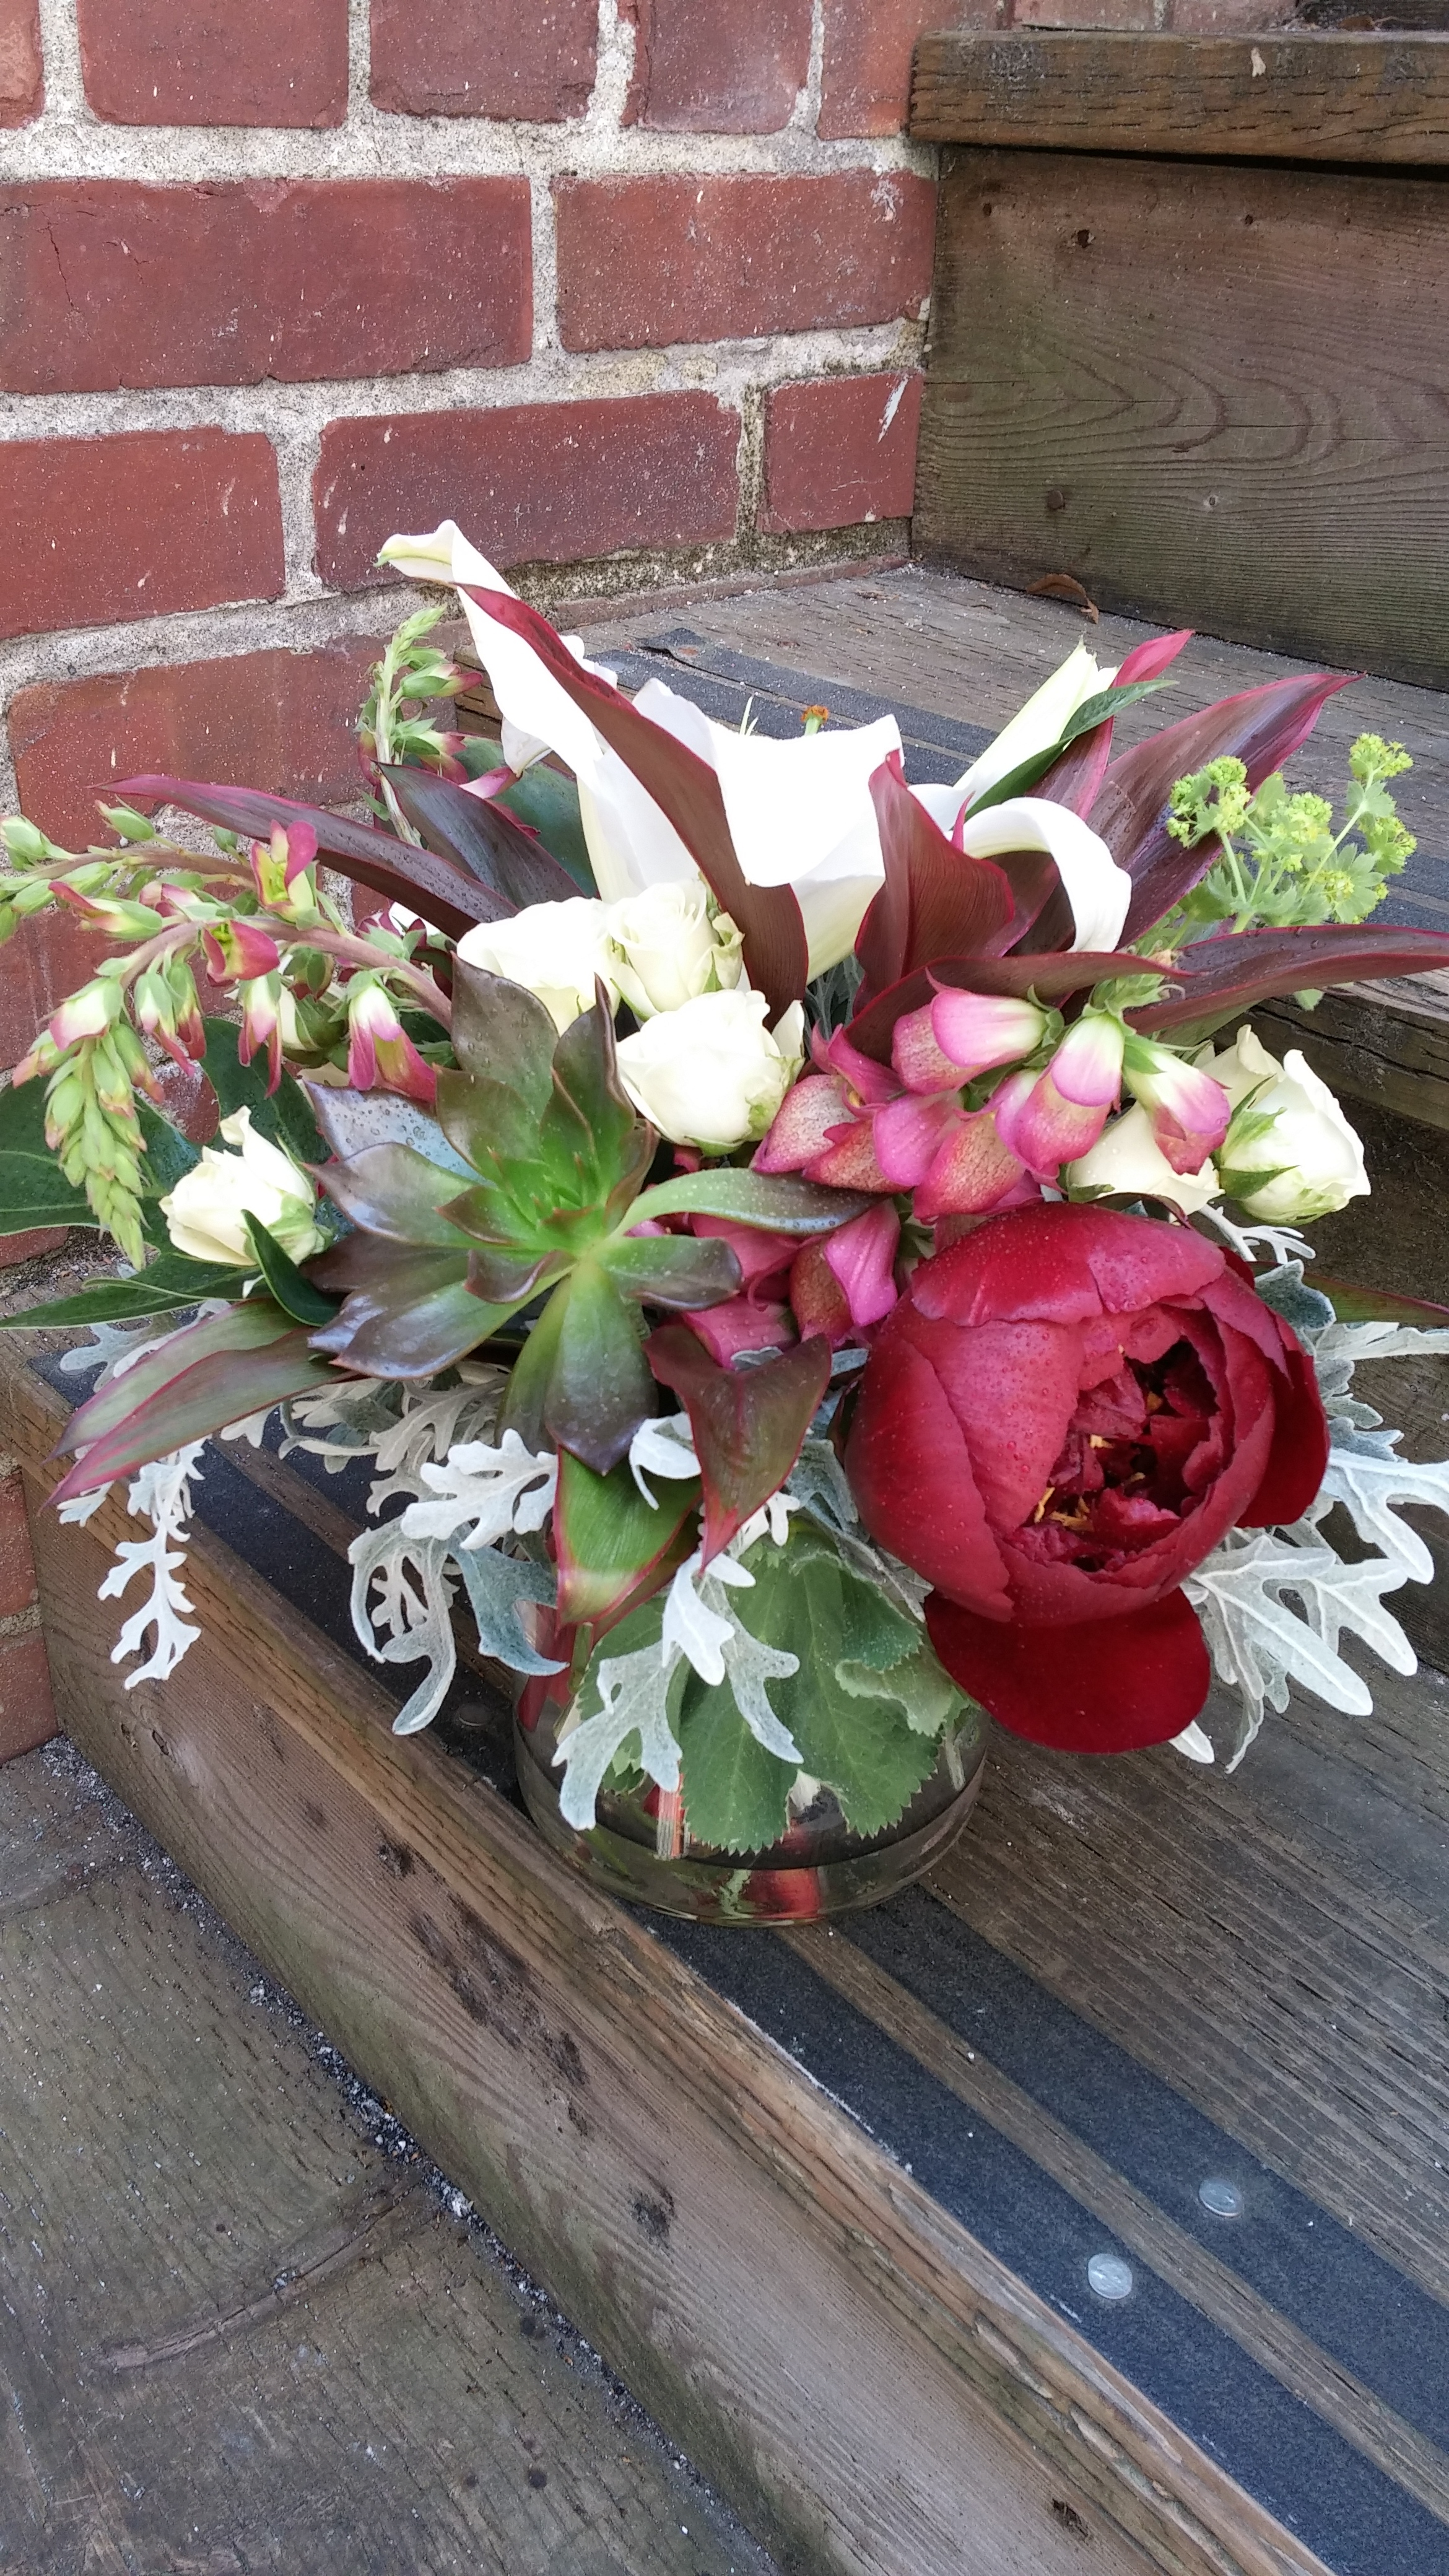 6. Muted bouquet with peony and succulent